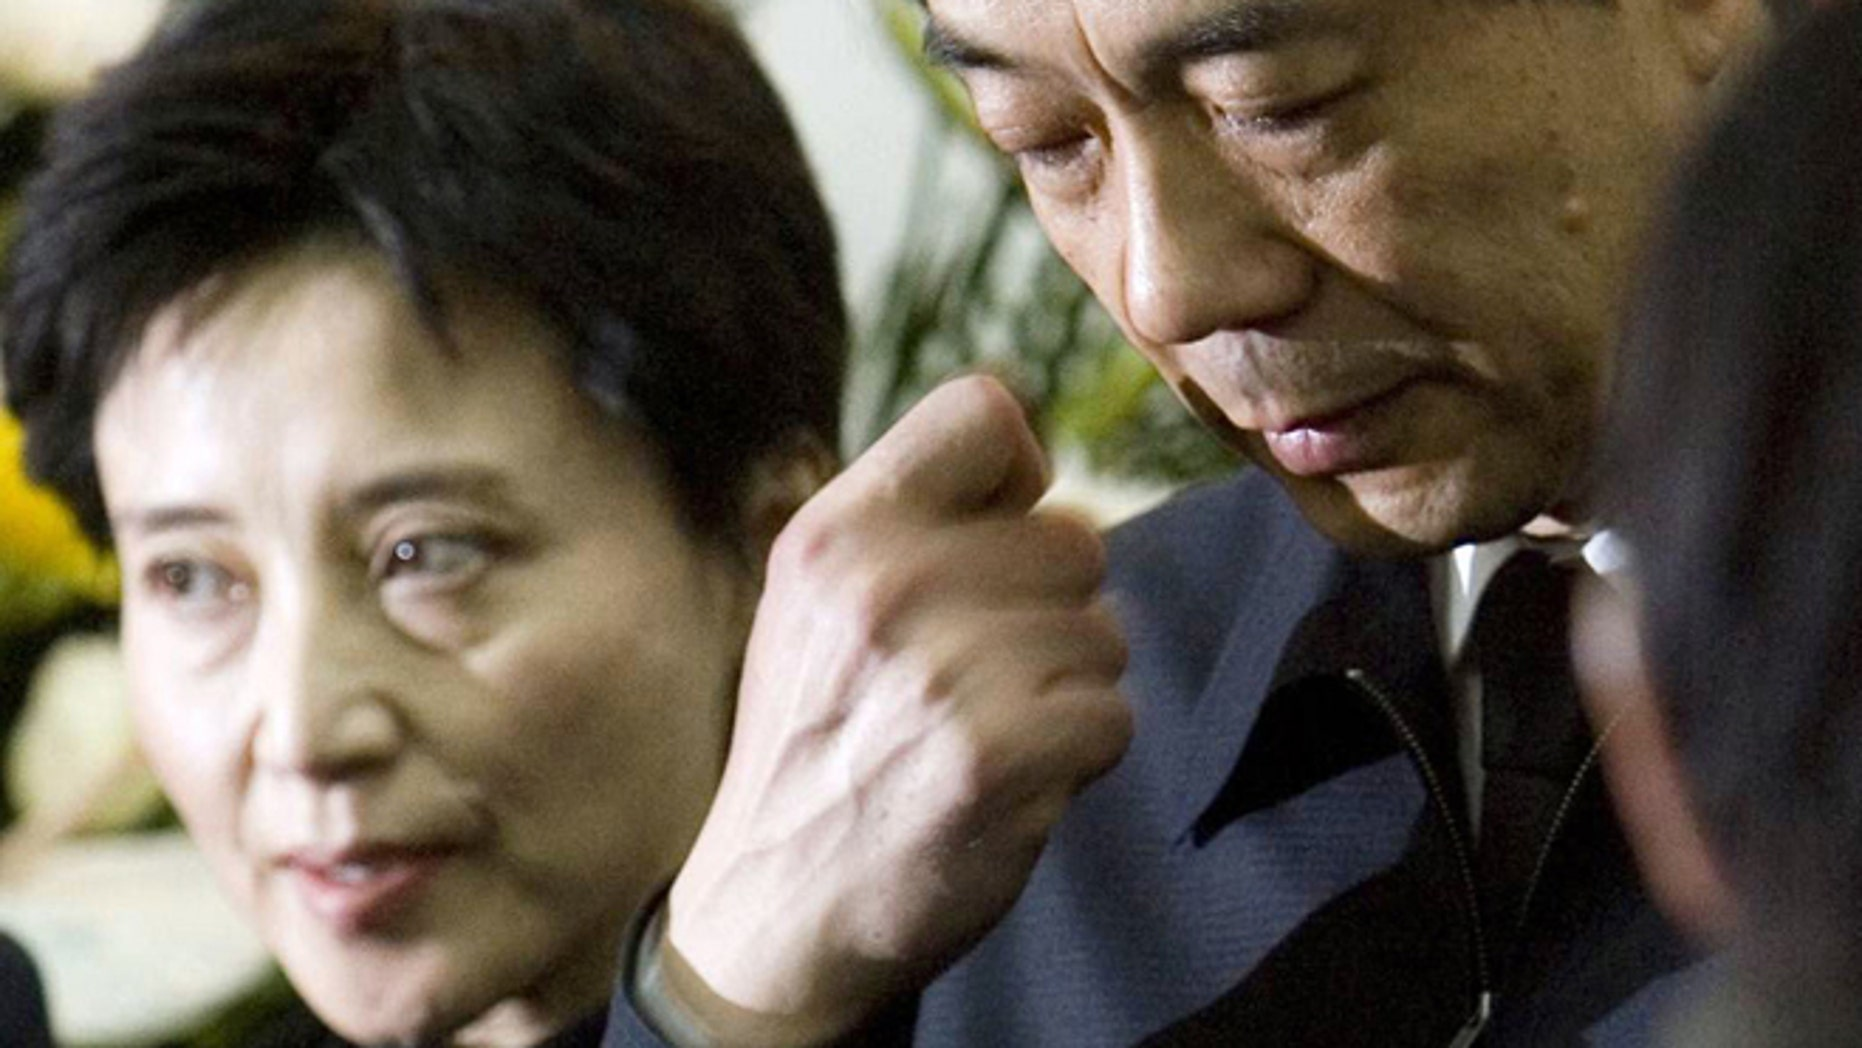 FILE - In this Jan. 17, 2007 file photo, former Chongqing Communist Party Secretary Bo Xilai, right, accompanied by his wife Gu Kailai, attends a funeral for his father in Beijing.